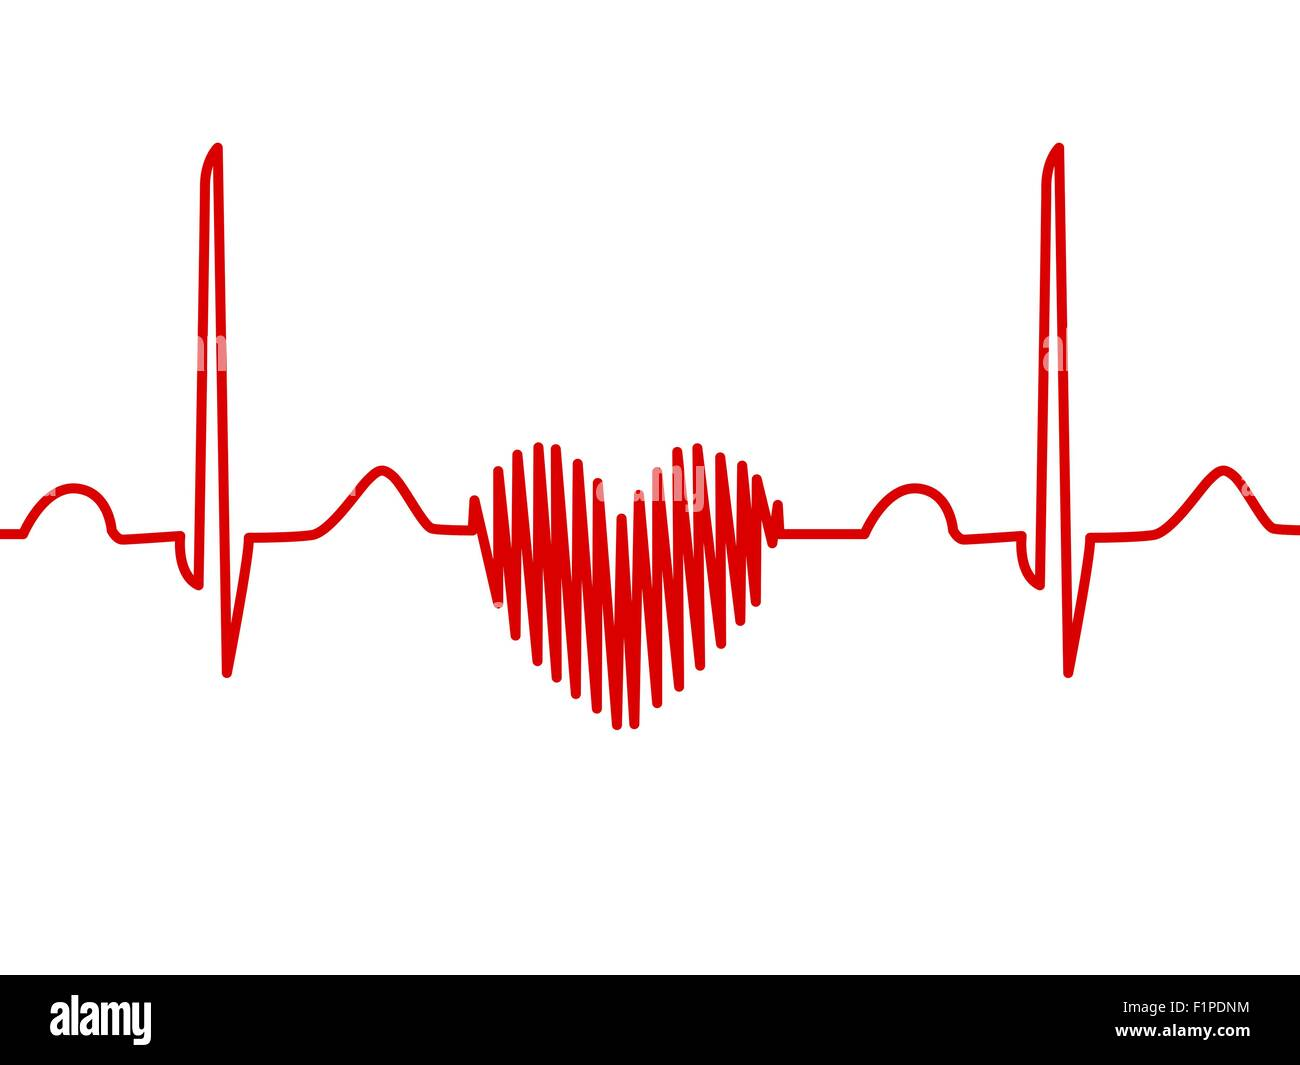 Computer artwork of a heart shaped electrocardiogram ecg trace an computer artwork of a heart shaped electrocardiogram ecg trace an ecg measures the electrical activity of the heart ccuart Image collections